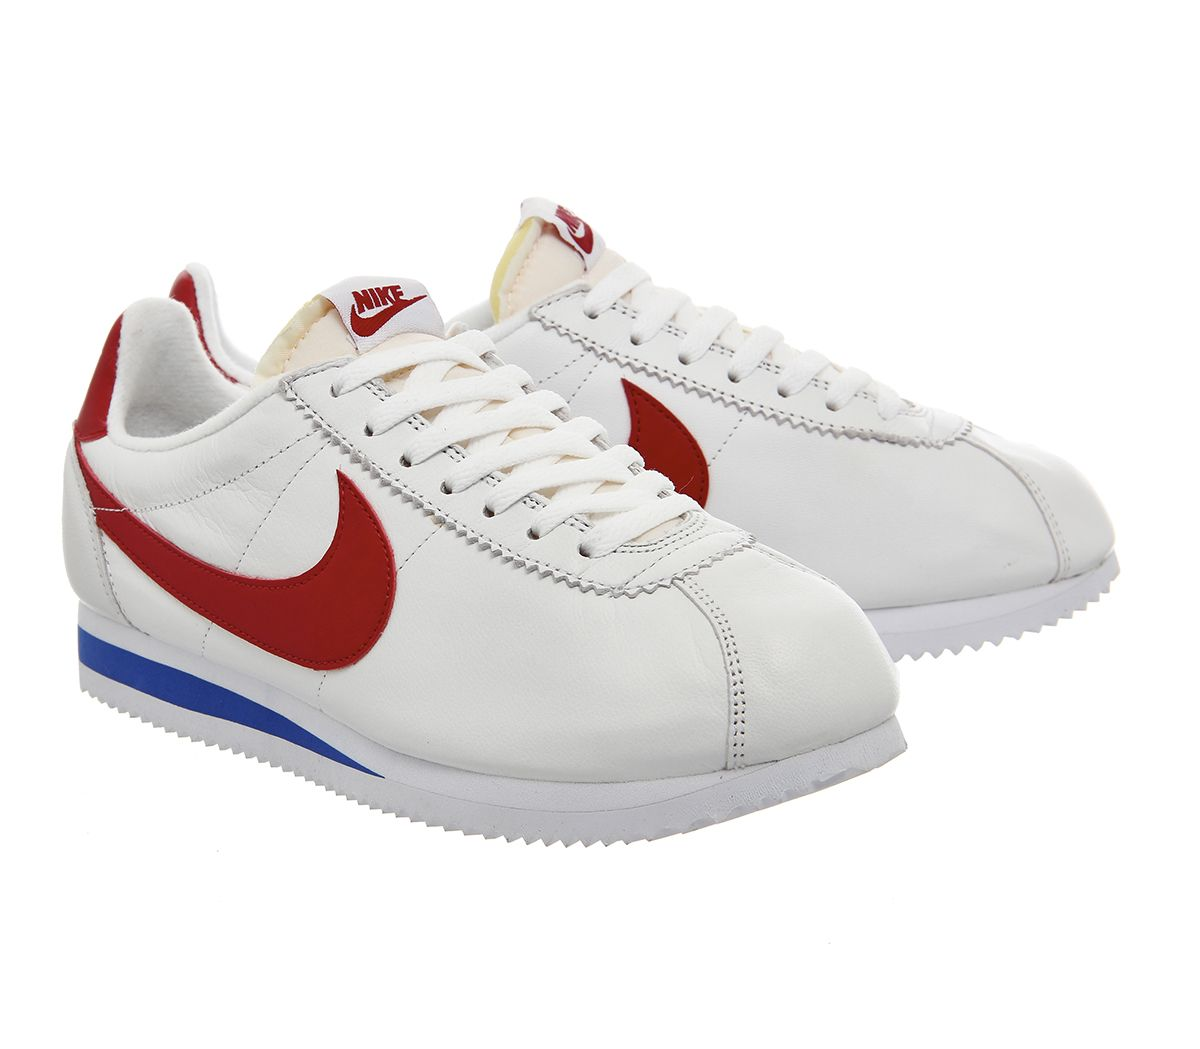 Nike Seleccion Zapatos Mexicana Dd8f0 45573 Uk Cortez lKFJcT1